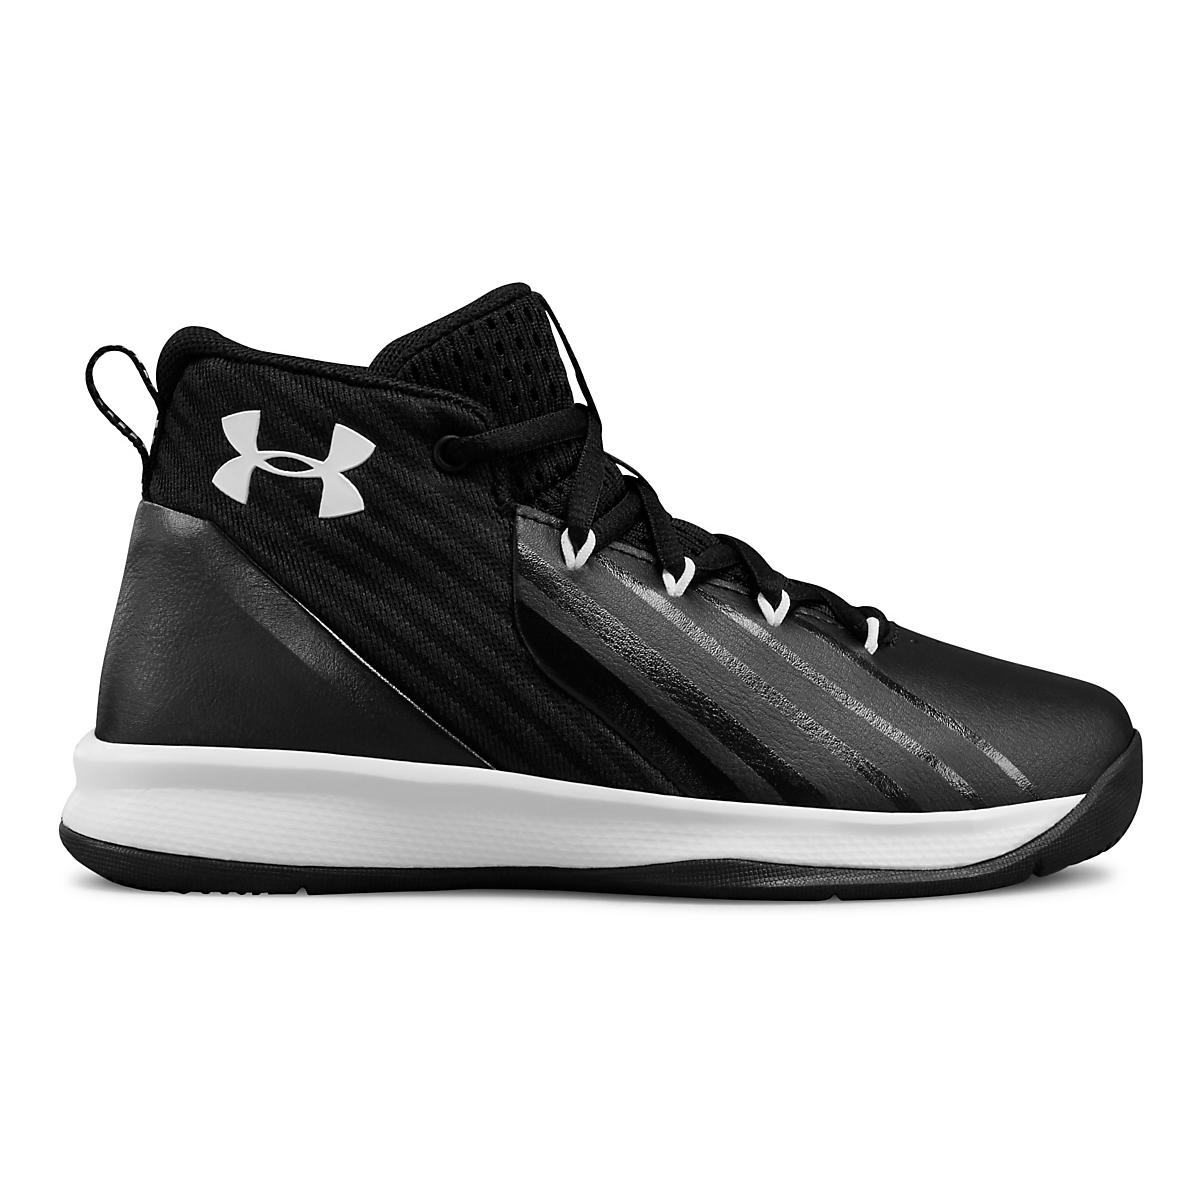 c347433fd94 Kids Under Armour Lockdown 3 Court Shoe